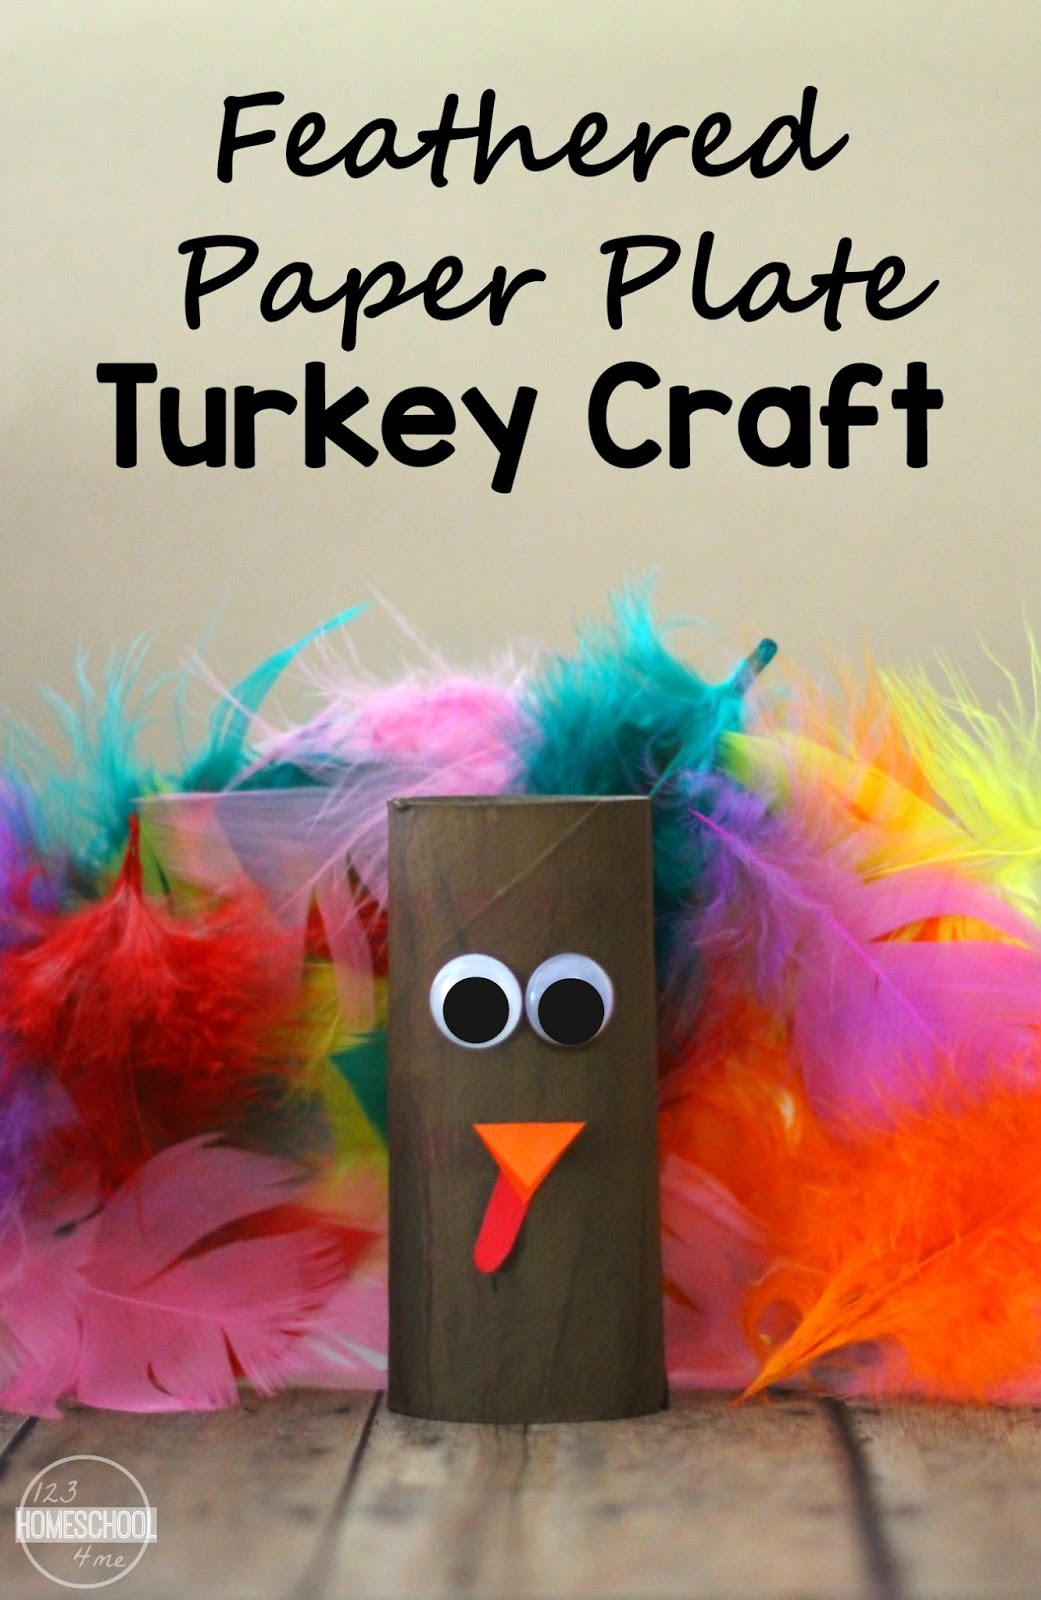 Feathered Paper Plate Turkey Craft